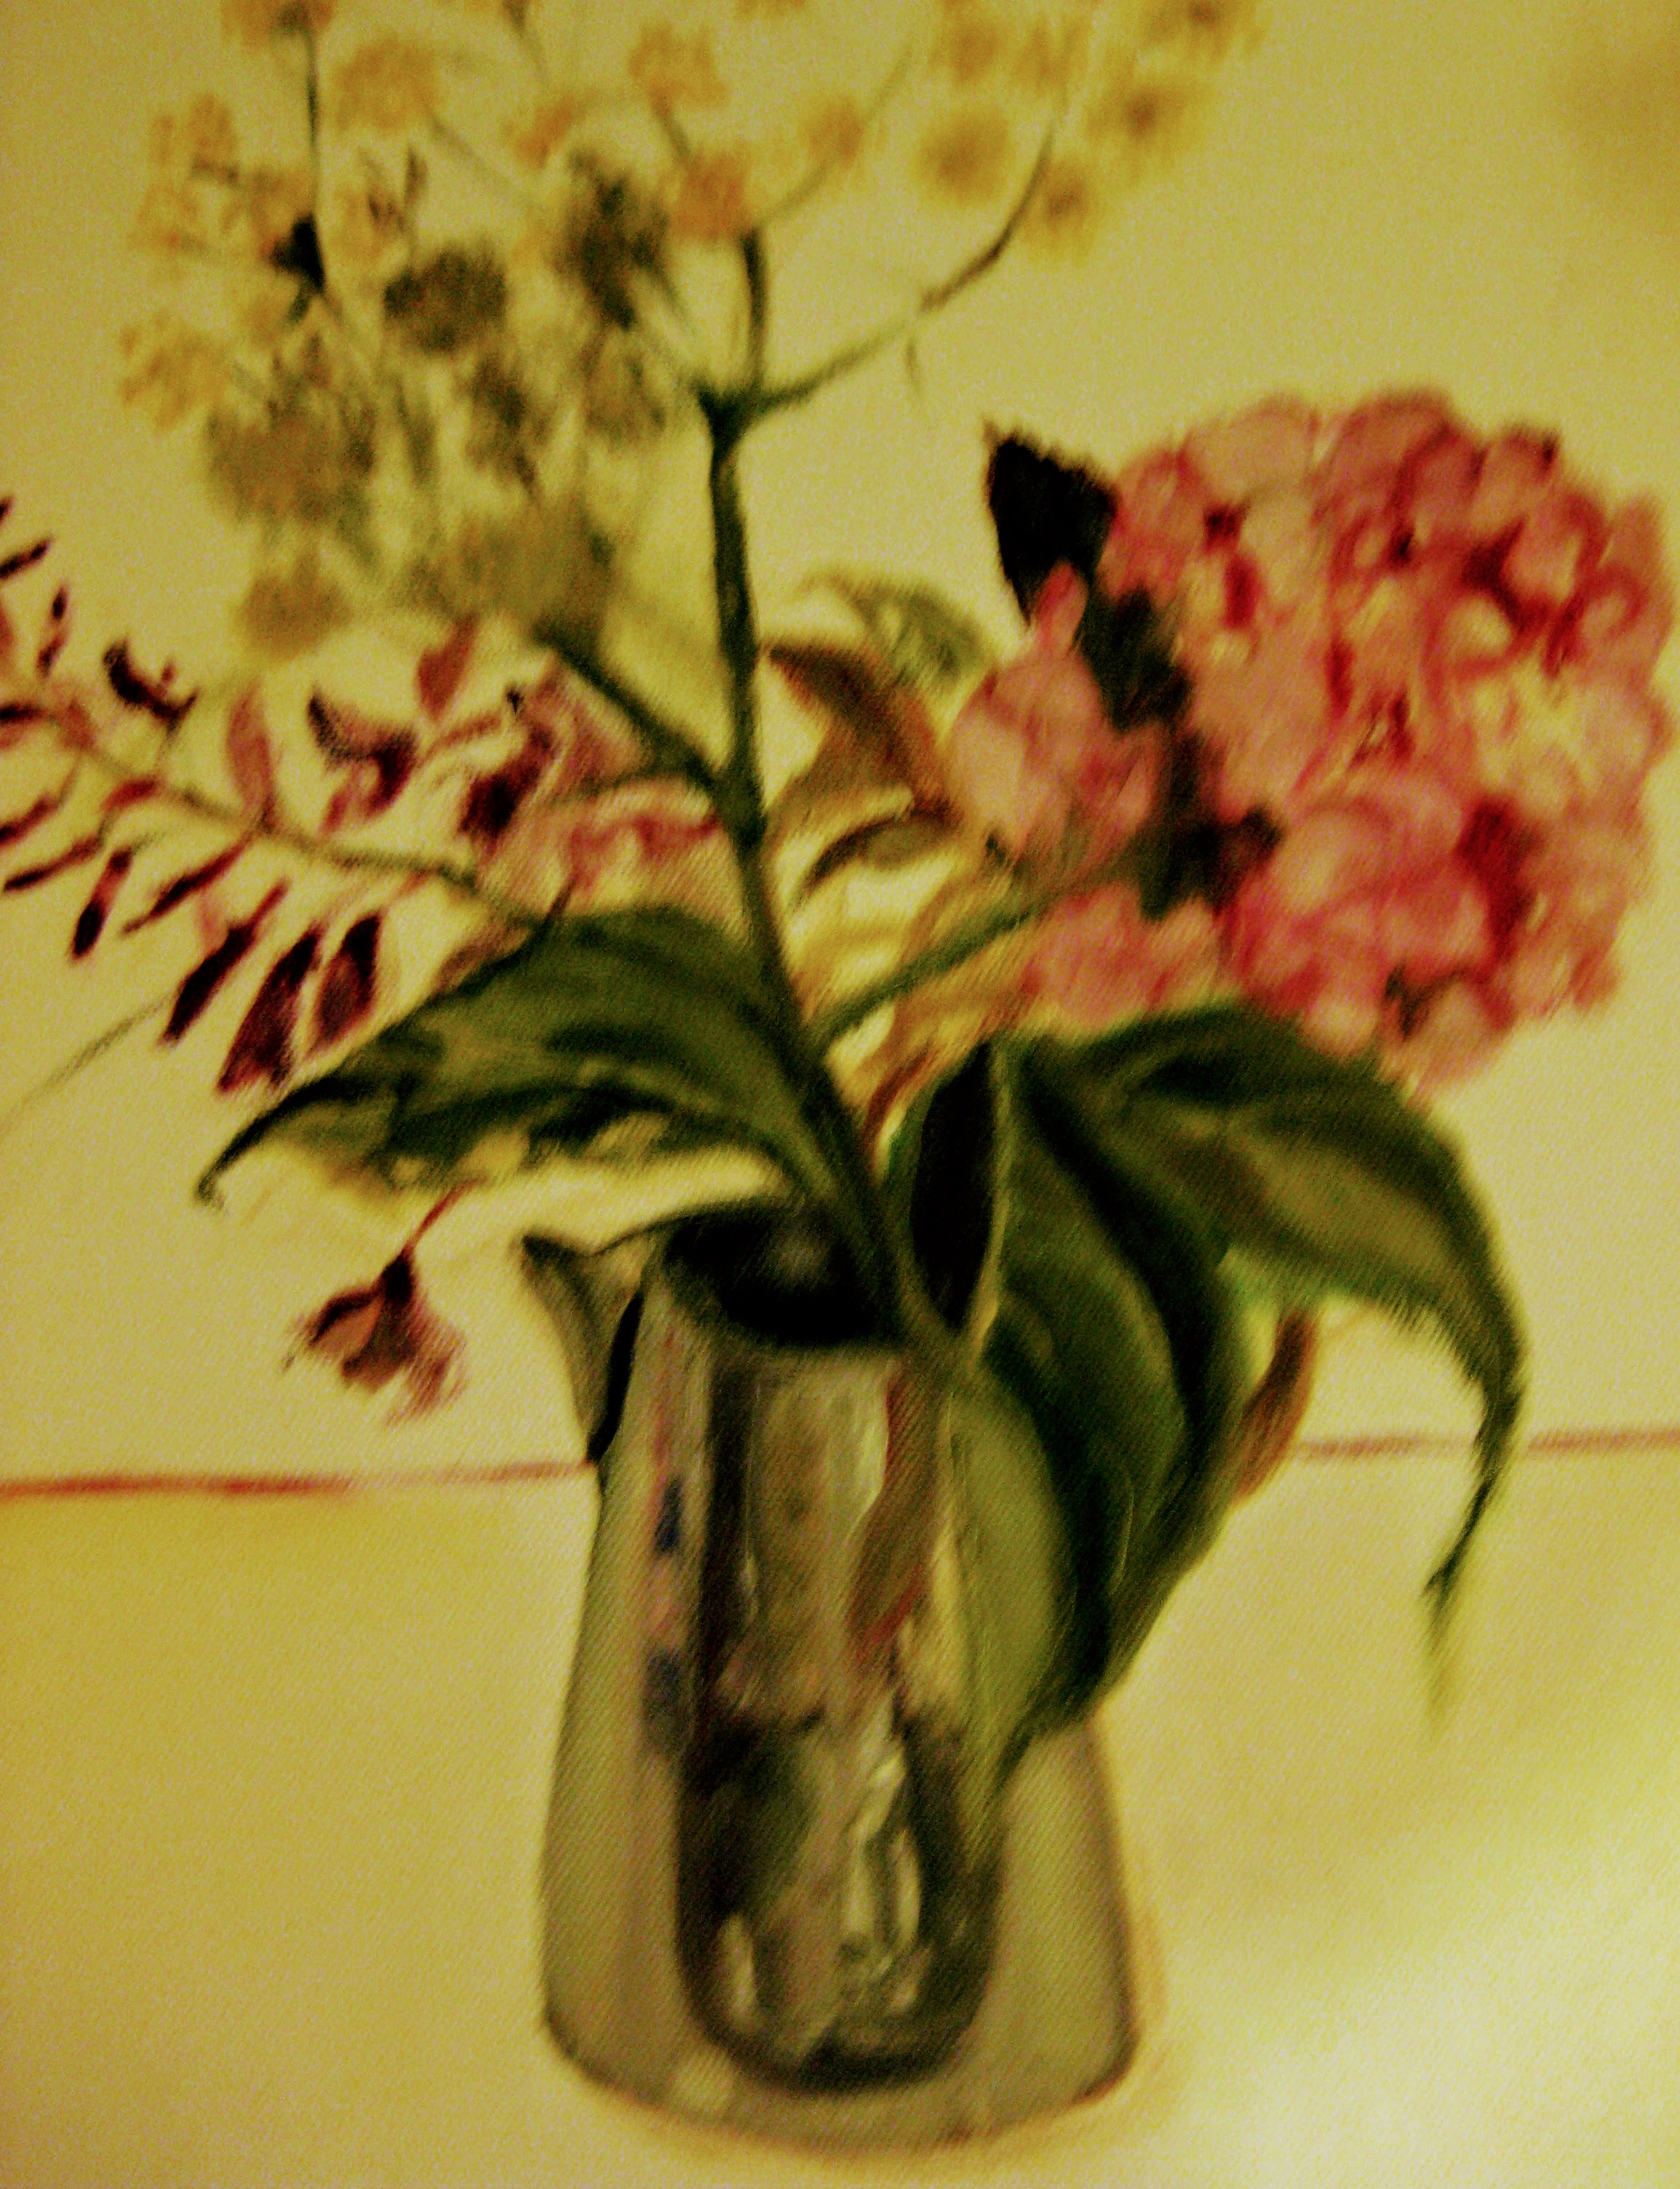 Flowers in Metal Jug   Acrylics on canvas  by Sally Hyman